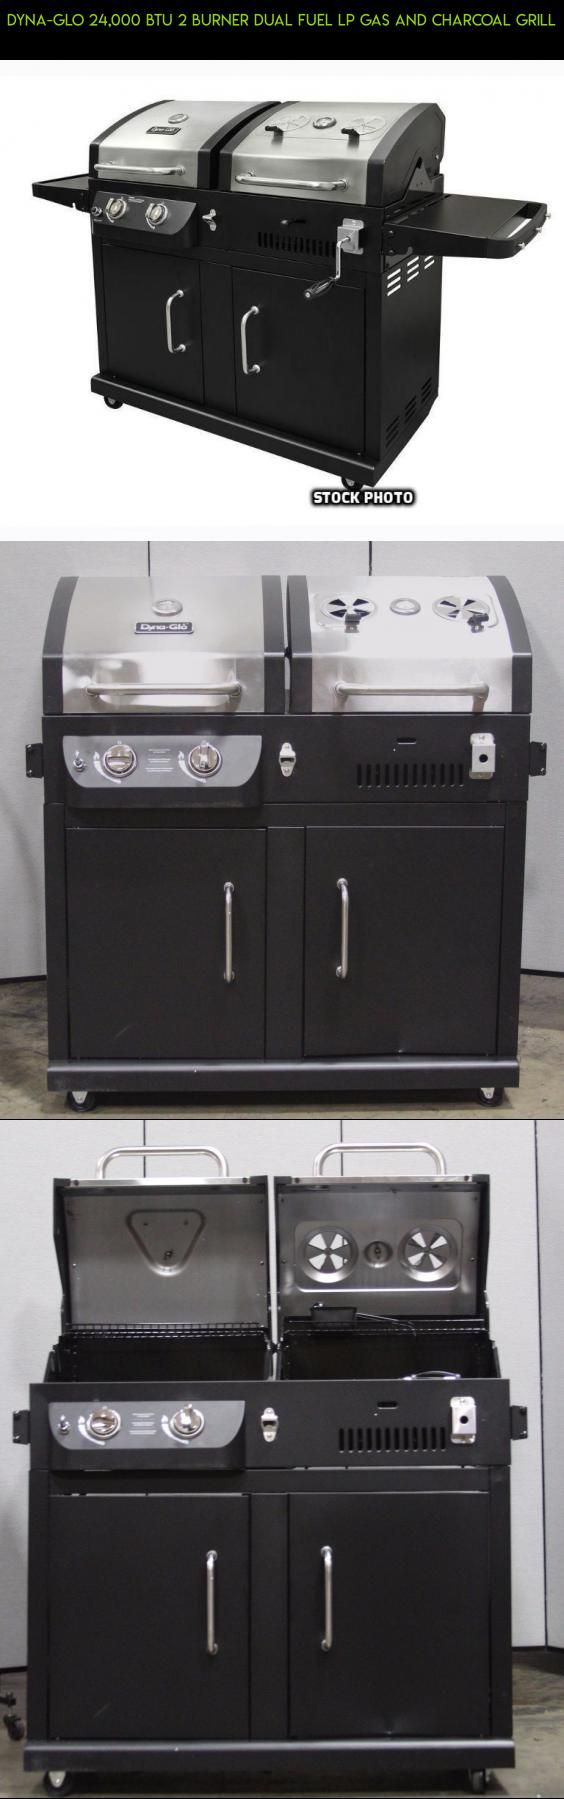 Dyna-Glo 24,000 BTU 2 Burner Dual Fuel LP Gas And Charcoal Grill #tech #kit #camera #shopping #and #fpv #gas #plans #technology #charcoal #drone #grills #racing #parts #products #gadgets